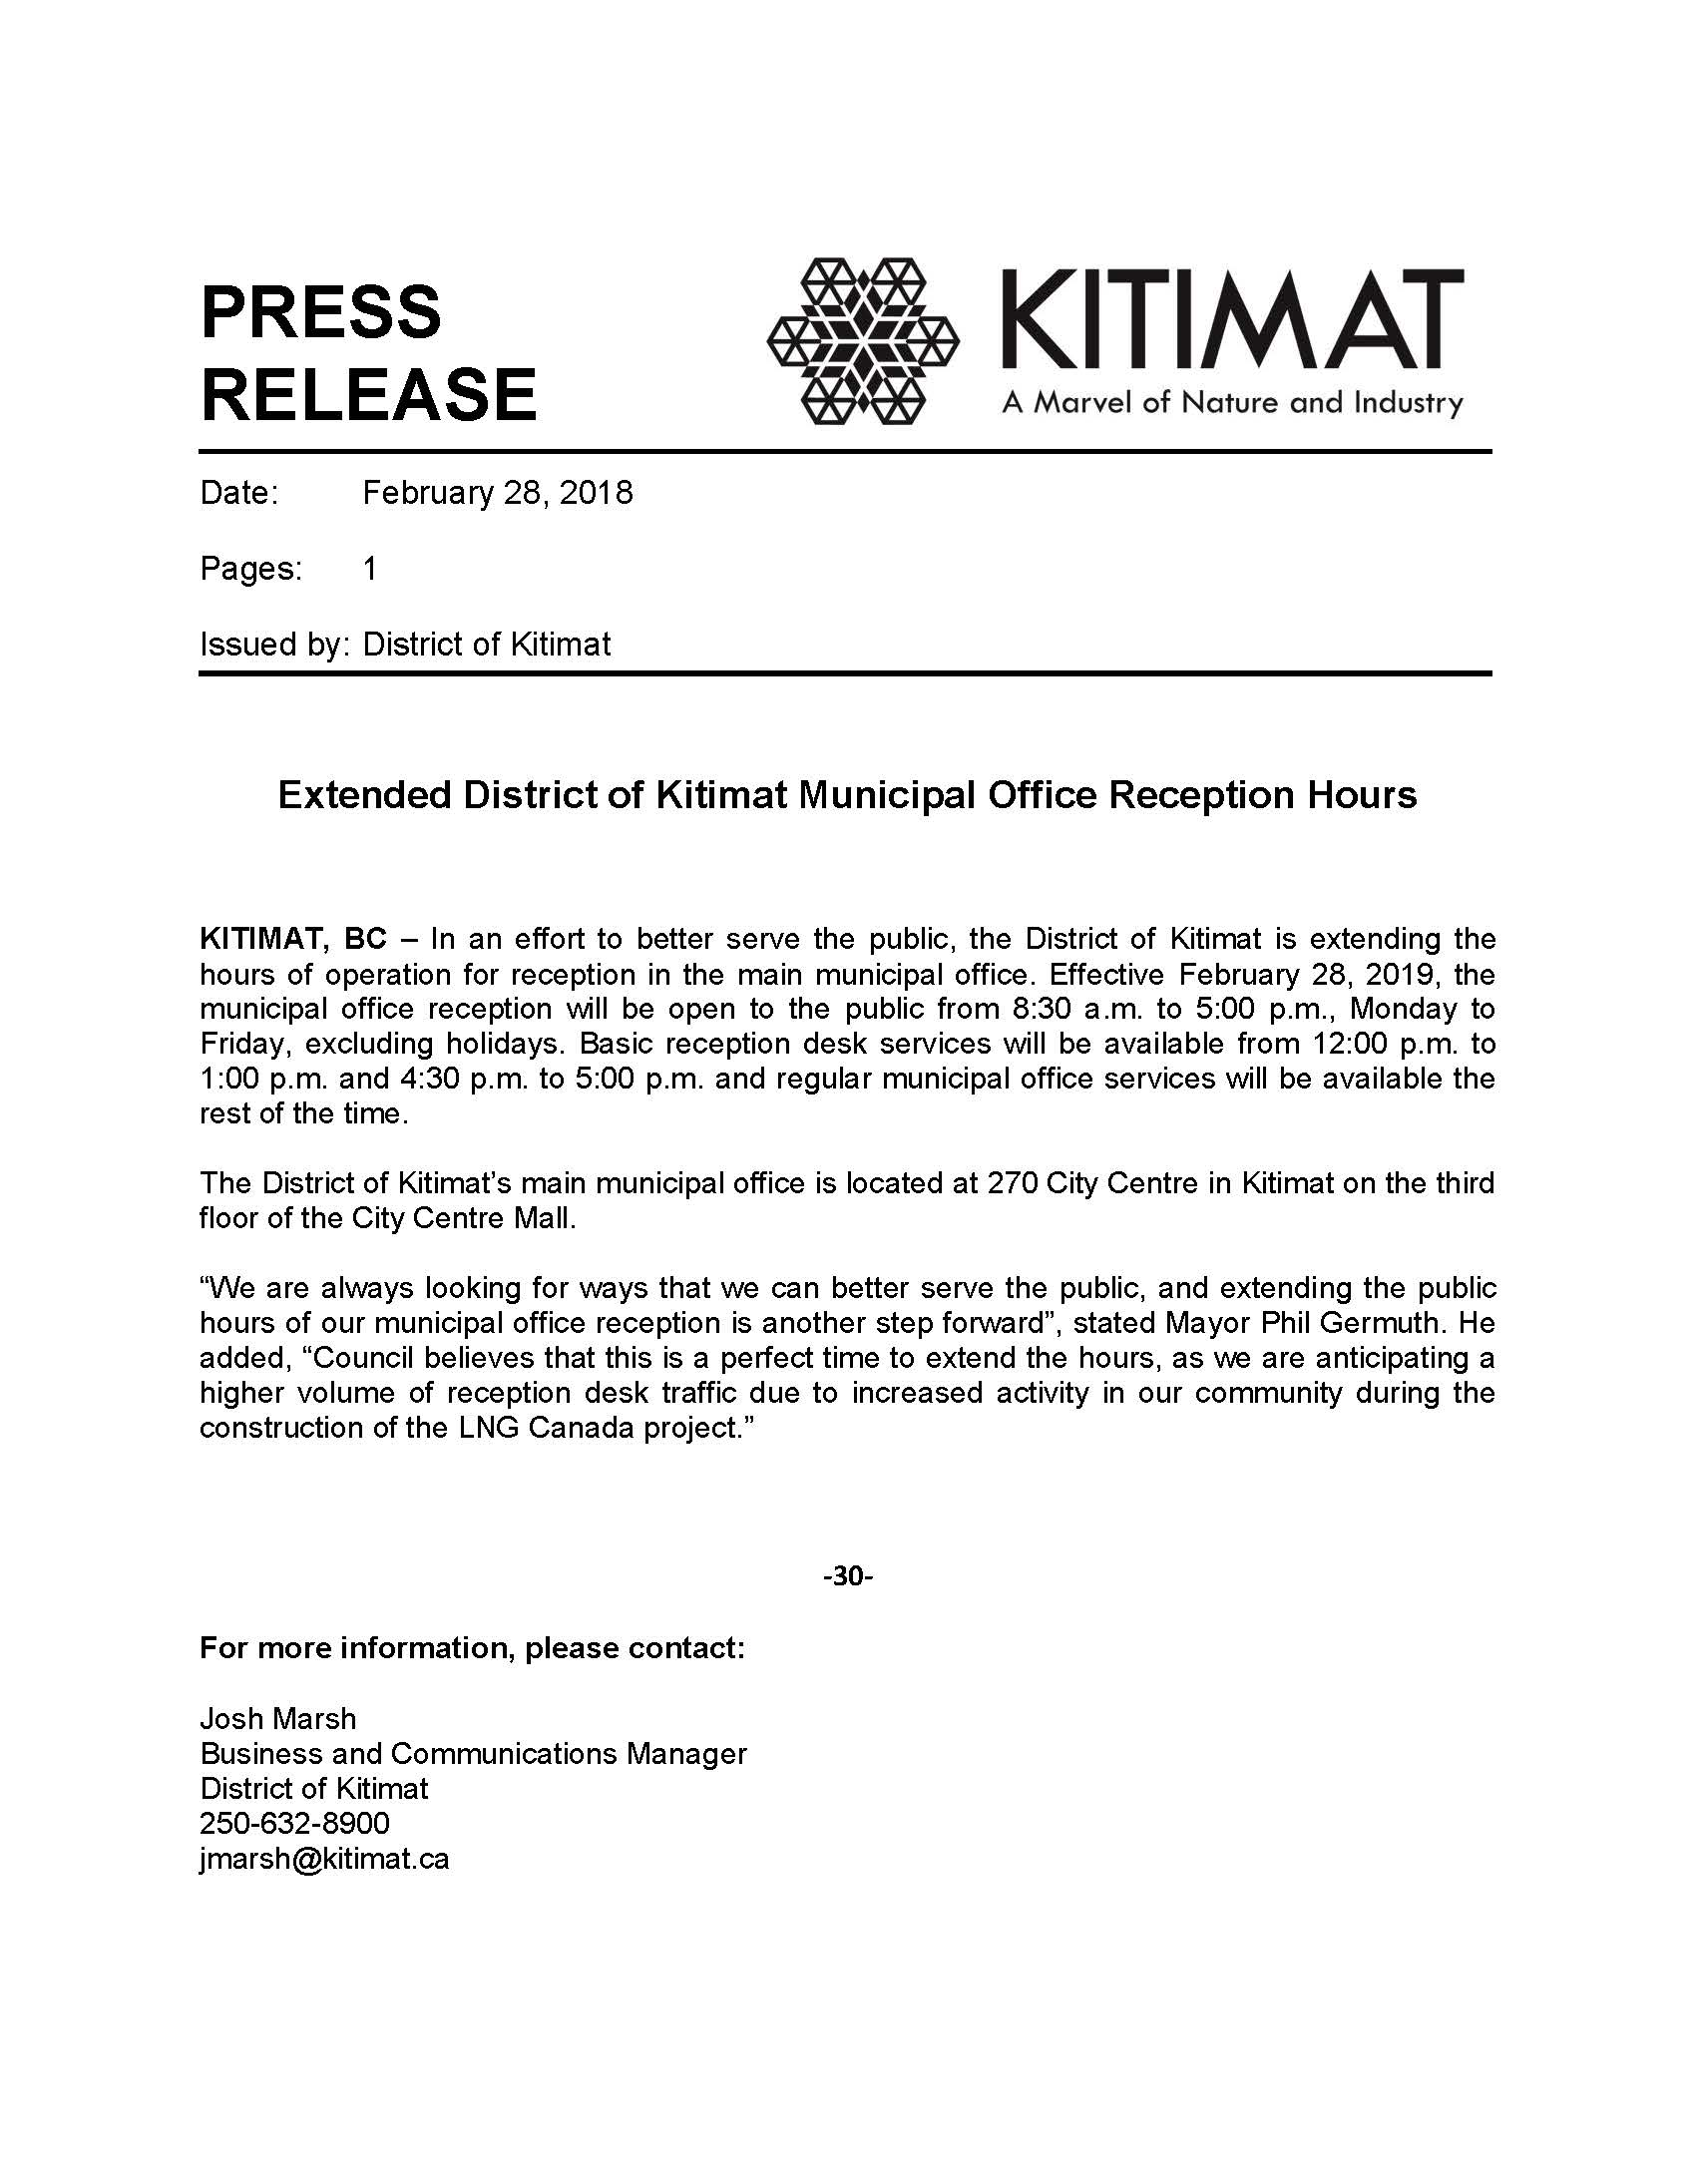 19-02-28_DoK_Press Release_New Municipal Office Reception Hours